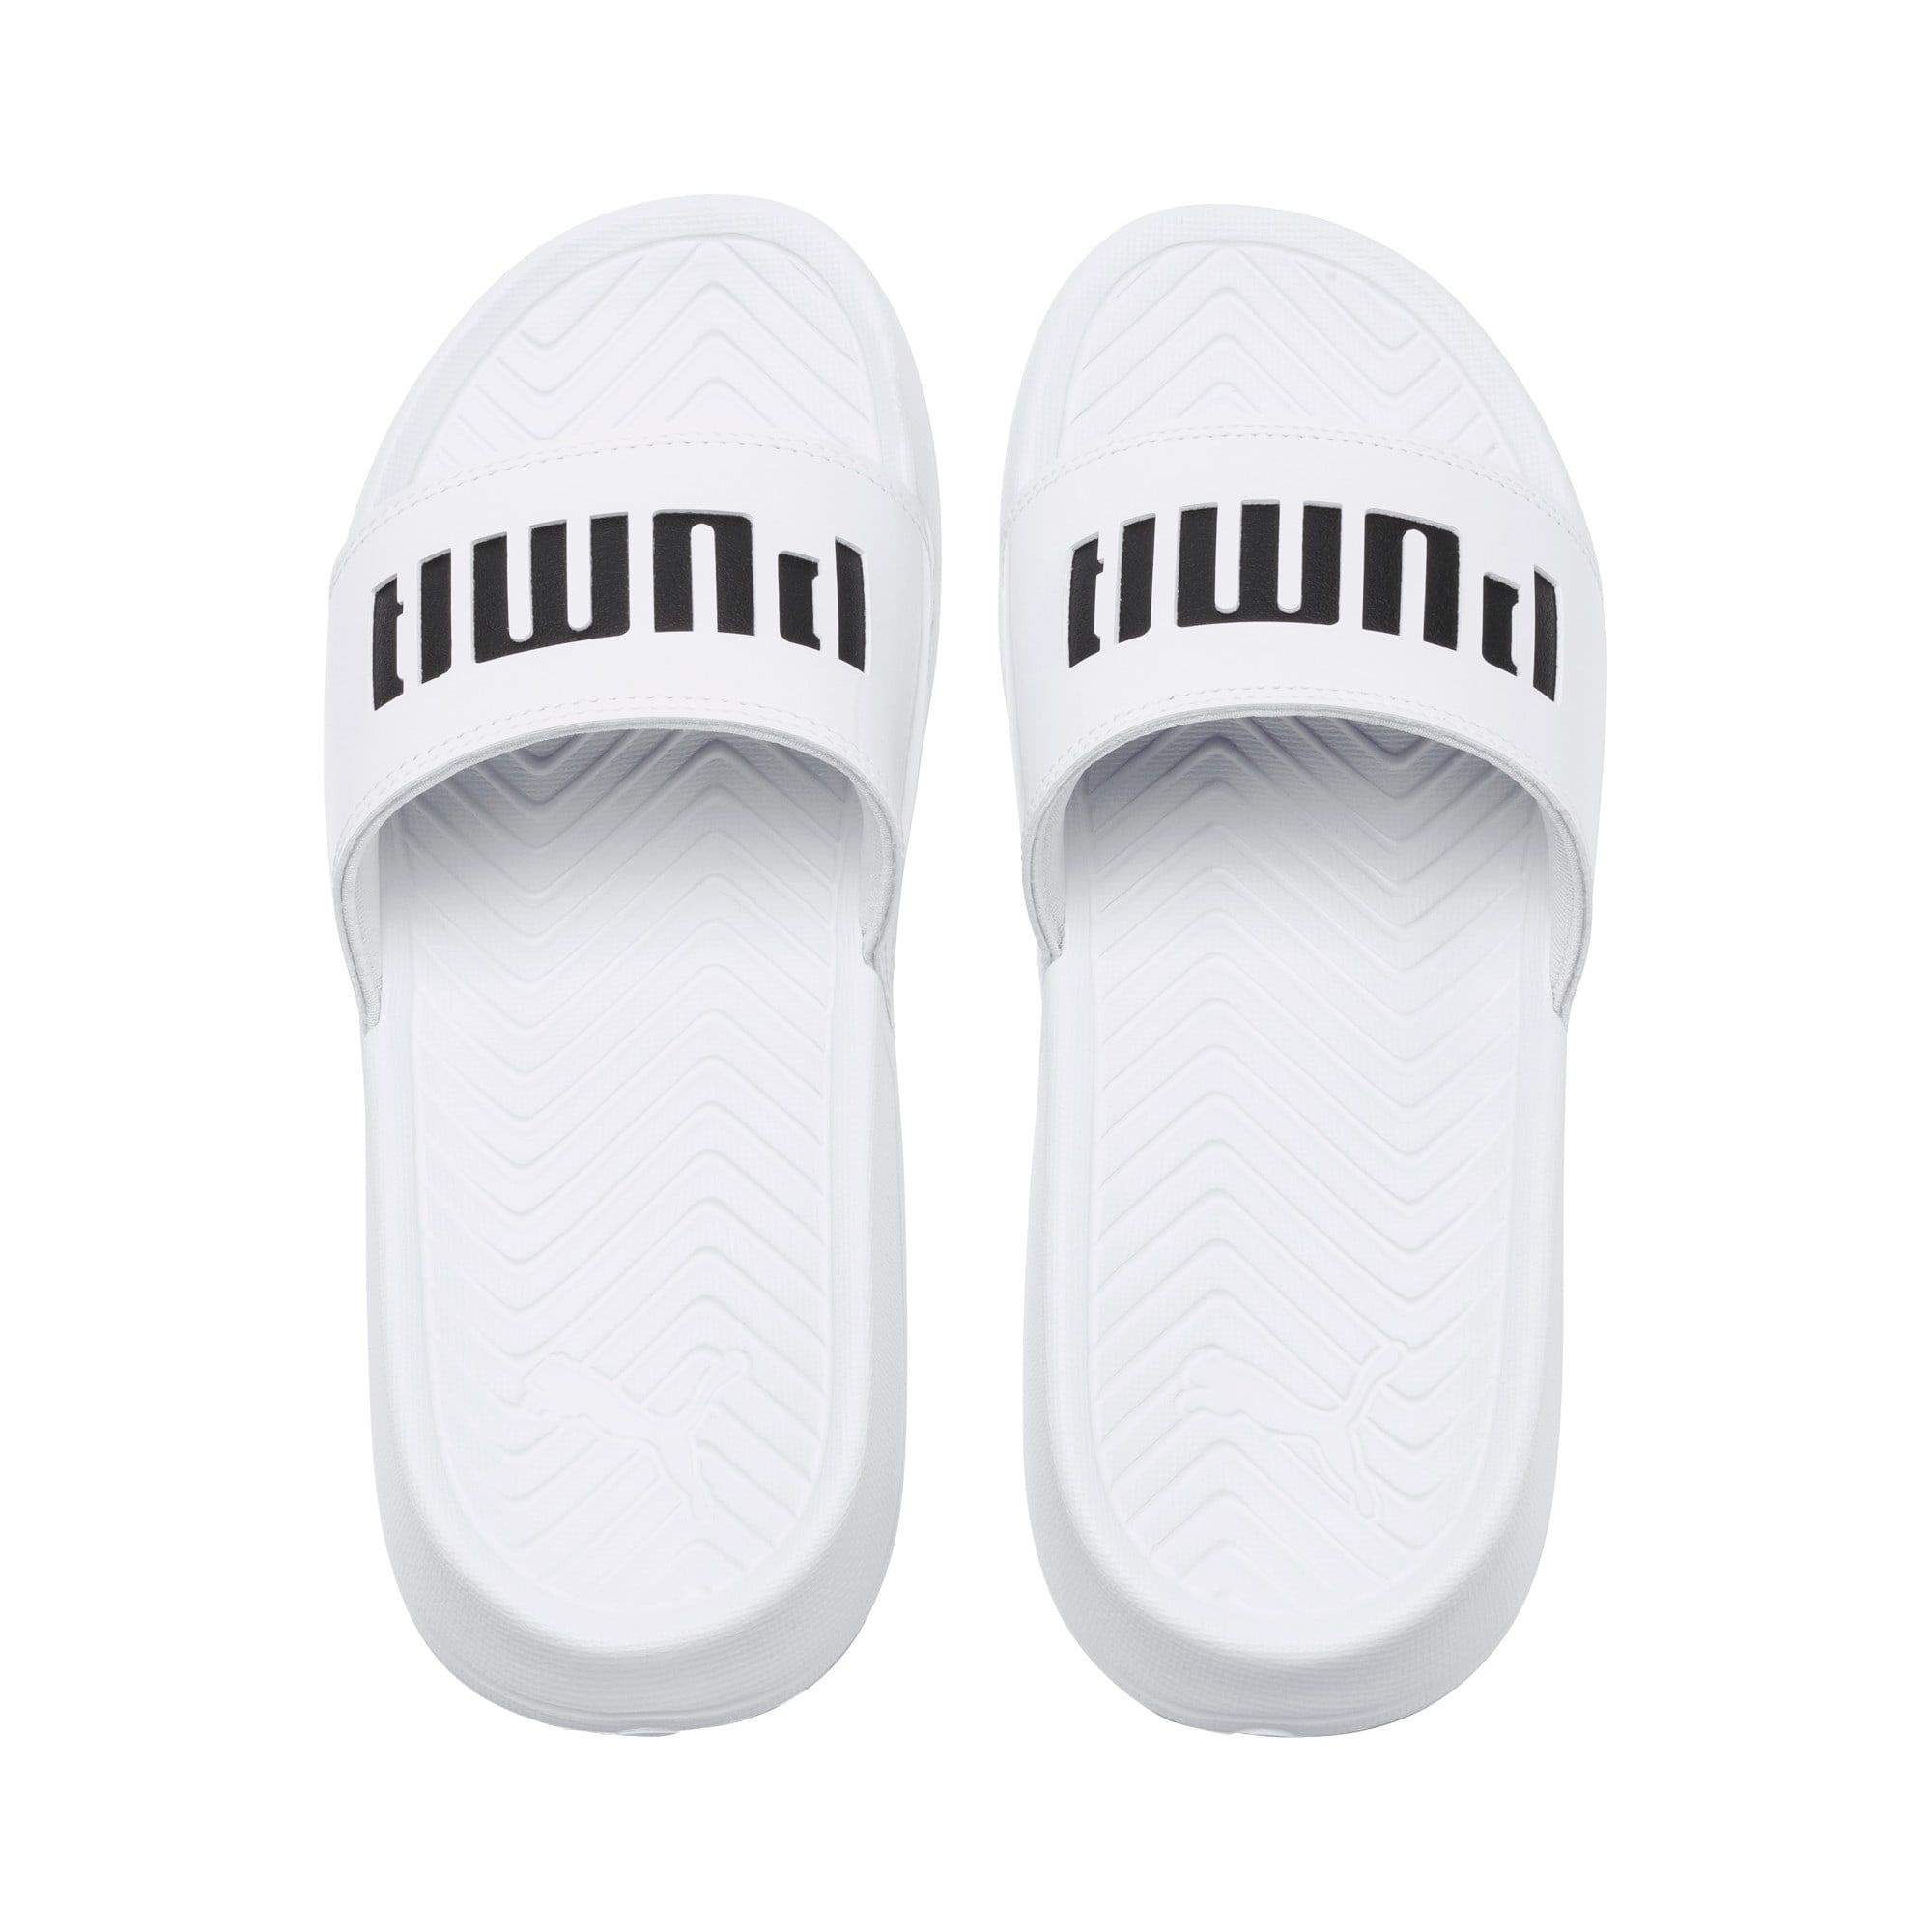 PUMA Popcat Patent Women's Sandals in White/Black size 5 #highsandals